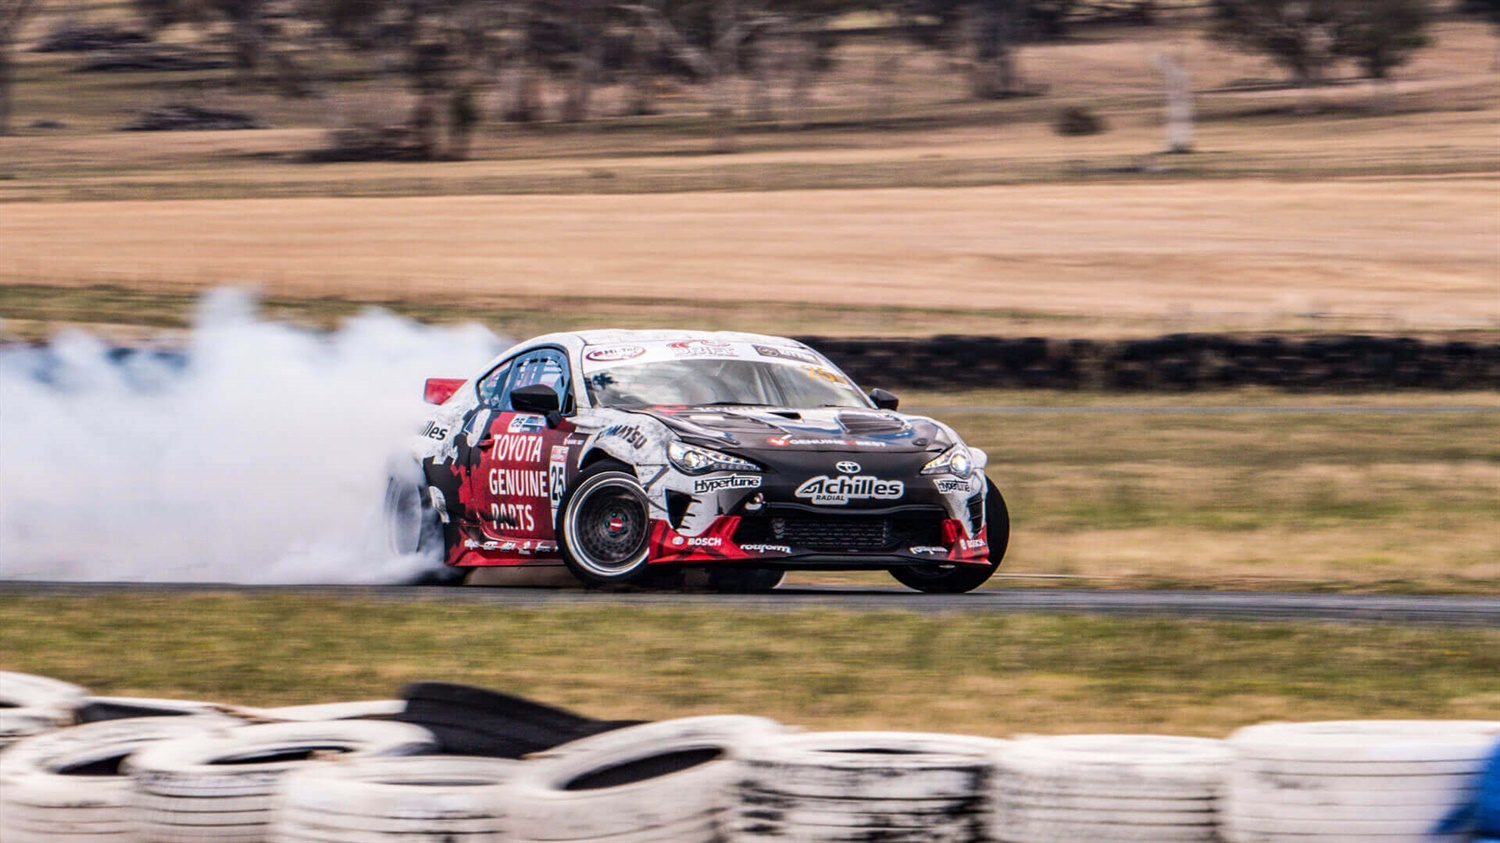 Beau Yates has won the 2018 Hi-Tec Drift AllStars Series championship title after two wins and a podium finish in every round.